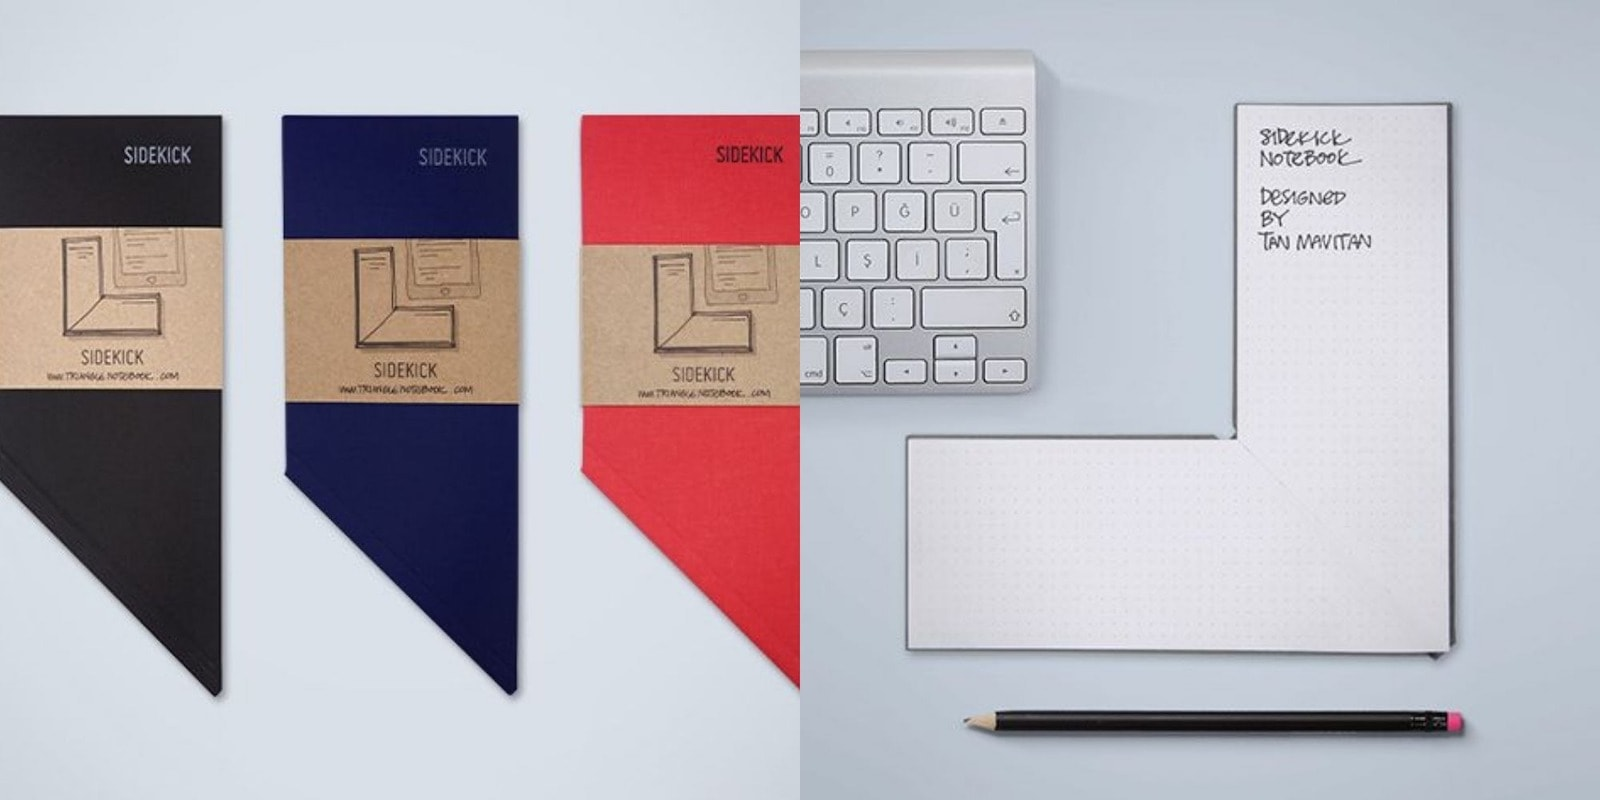 This cleverly designed notepad stays out of the way and well within reach.